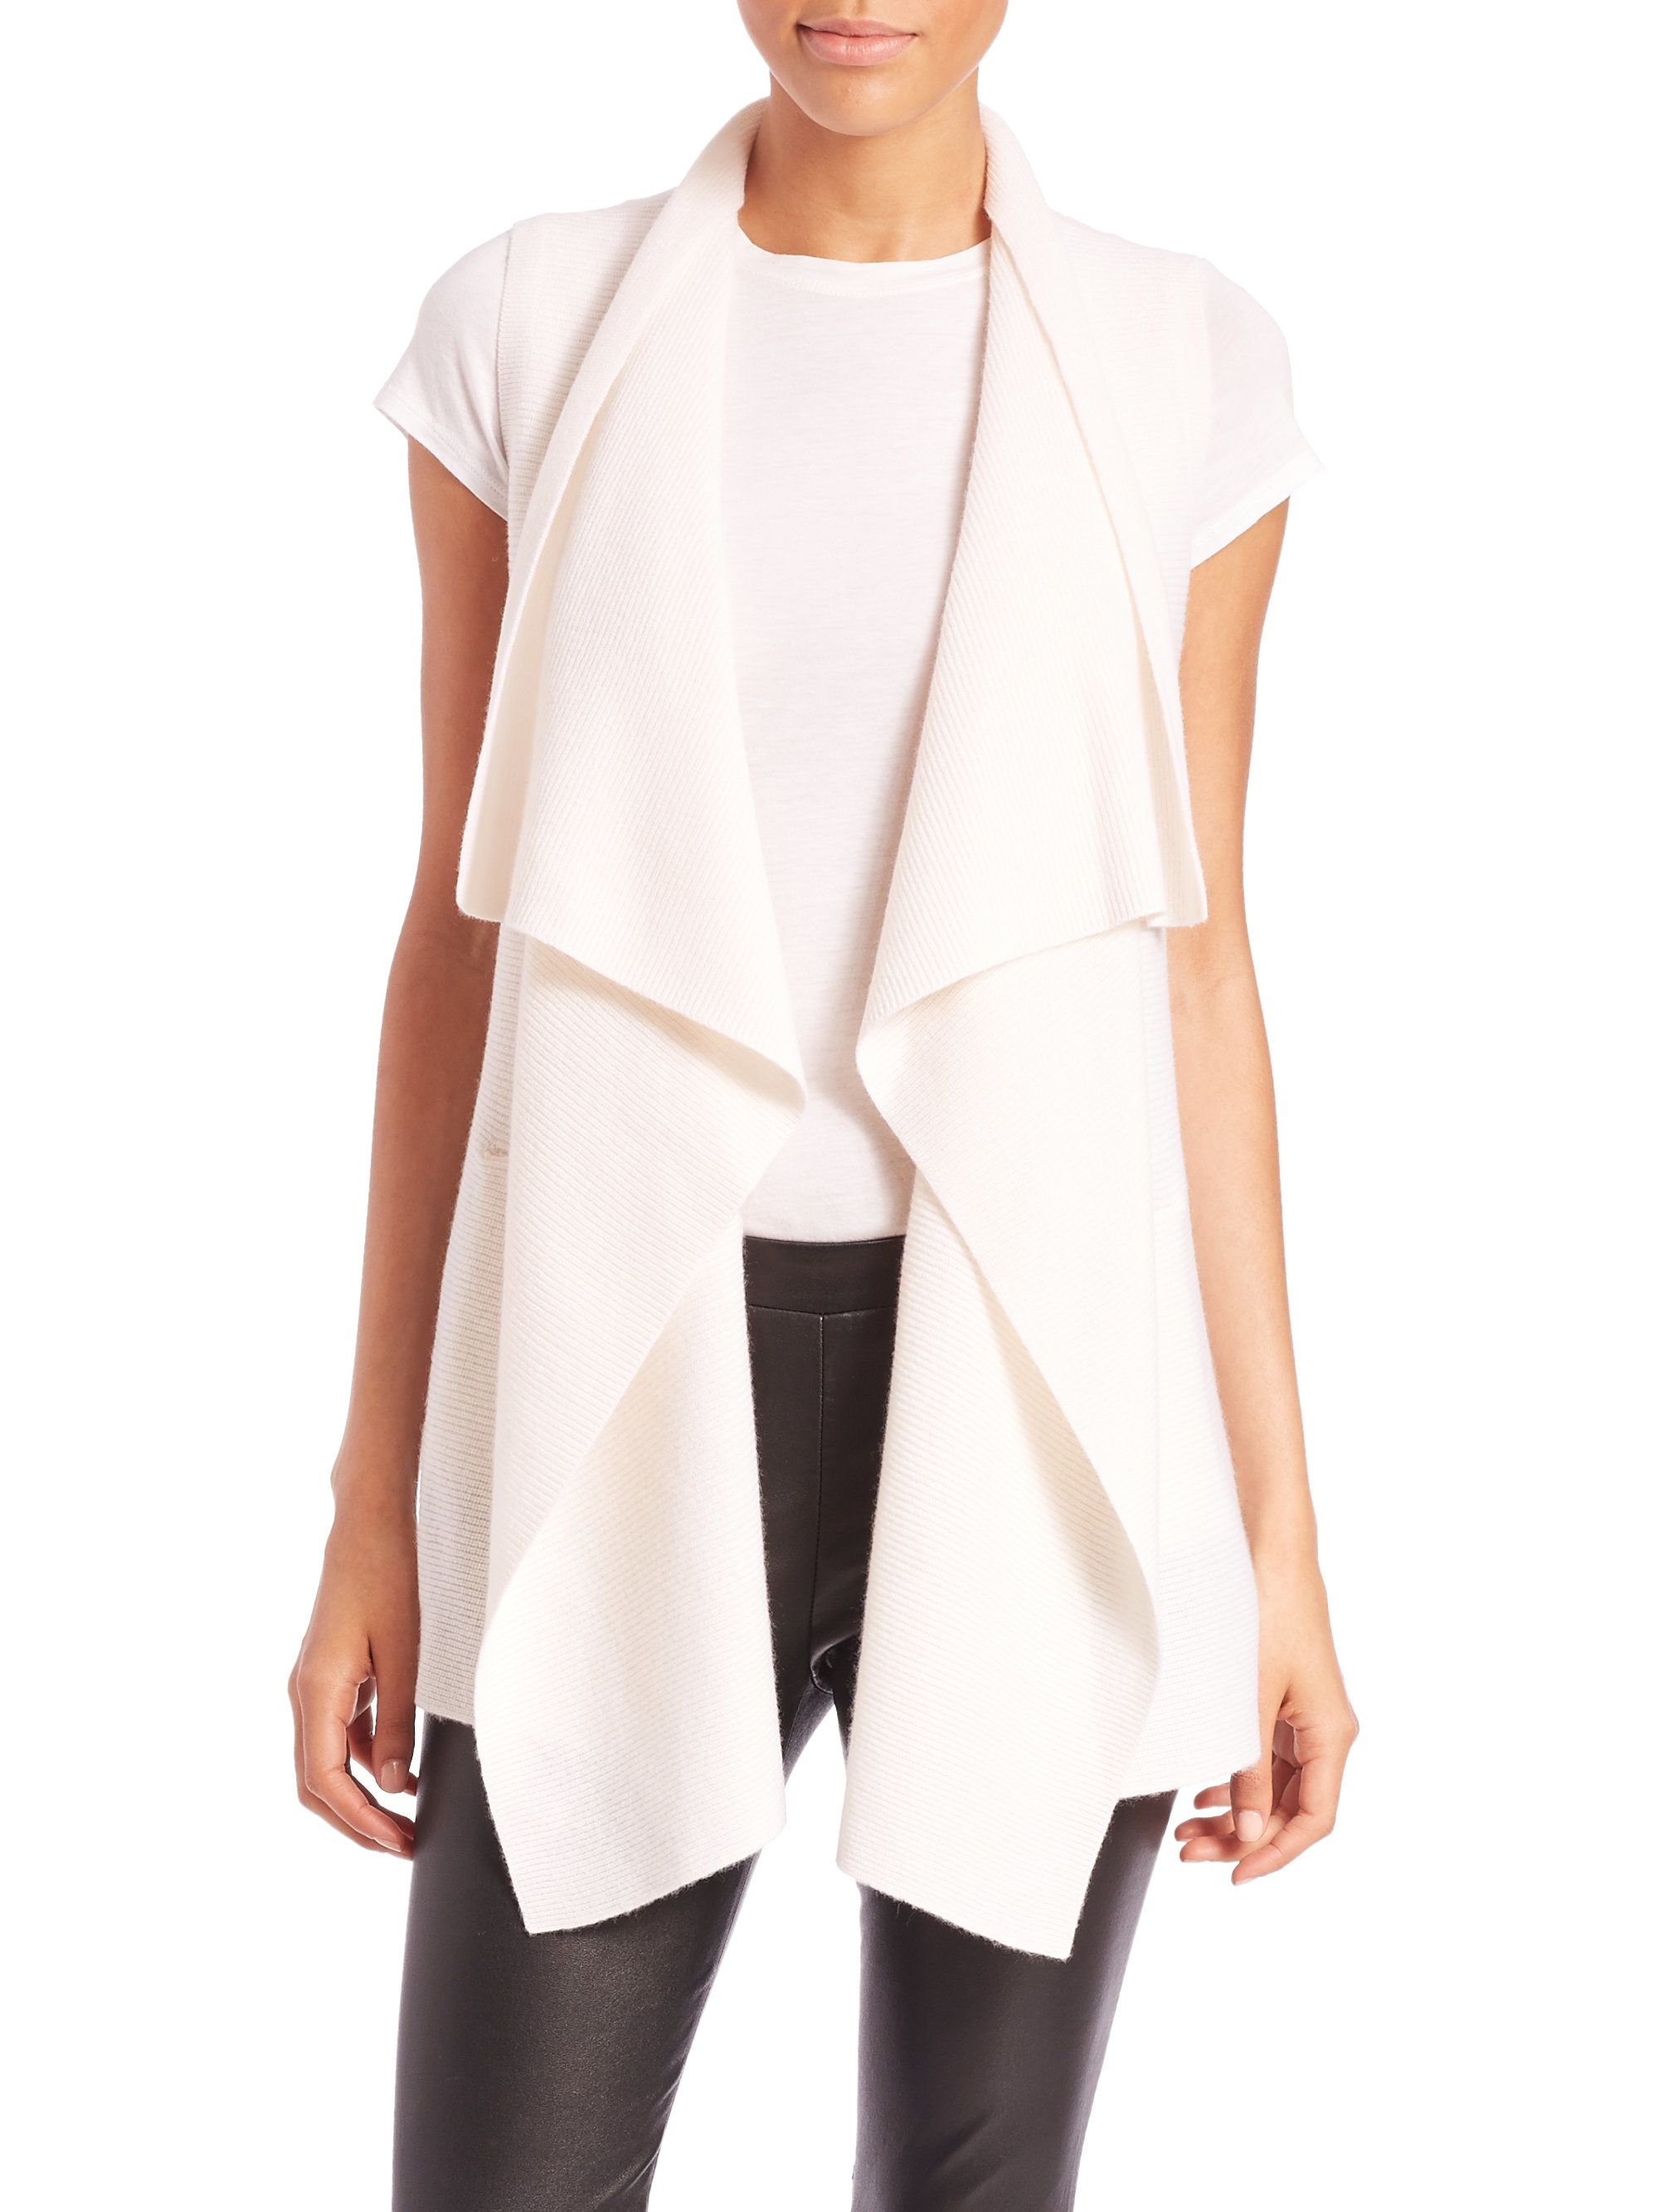 sweater cris free drape front drapes on womenss product over womens criss cardigan s shoes cross pullover shipping orders women overstock clothing